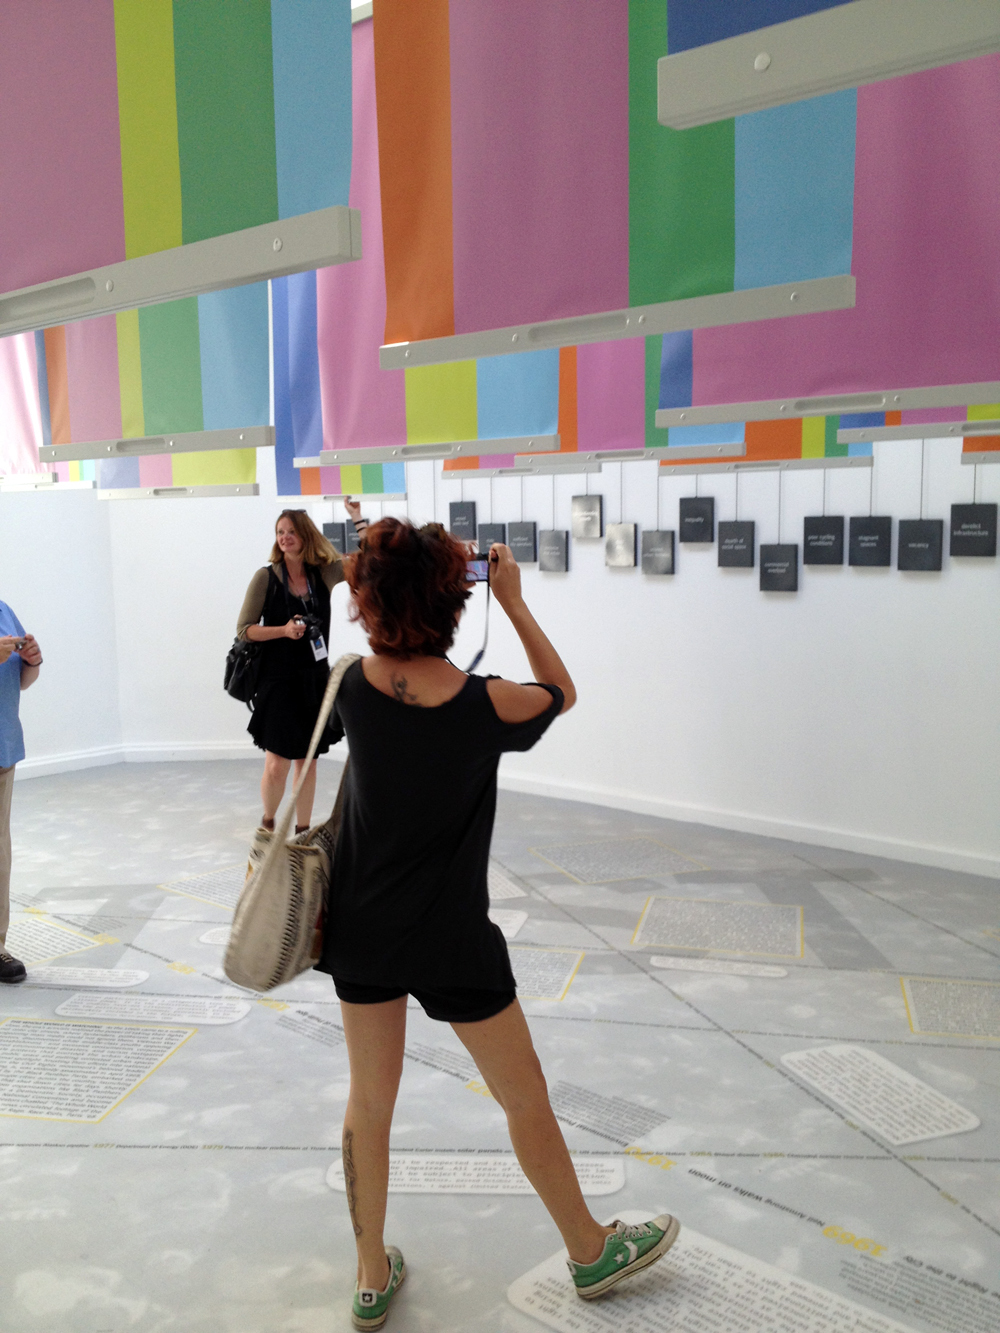 Spontaneous Interventions: Design Actions for the Common Good presents an ambitious cross-section of design activism throughout the United States. Designed by Freecell, M-A-D, and Interboro, this installation featured dual-sided pull-down posters which tied the individual entries with a...